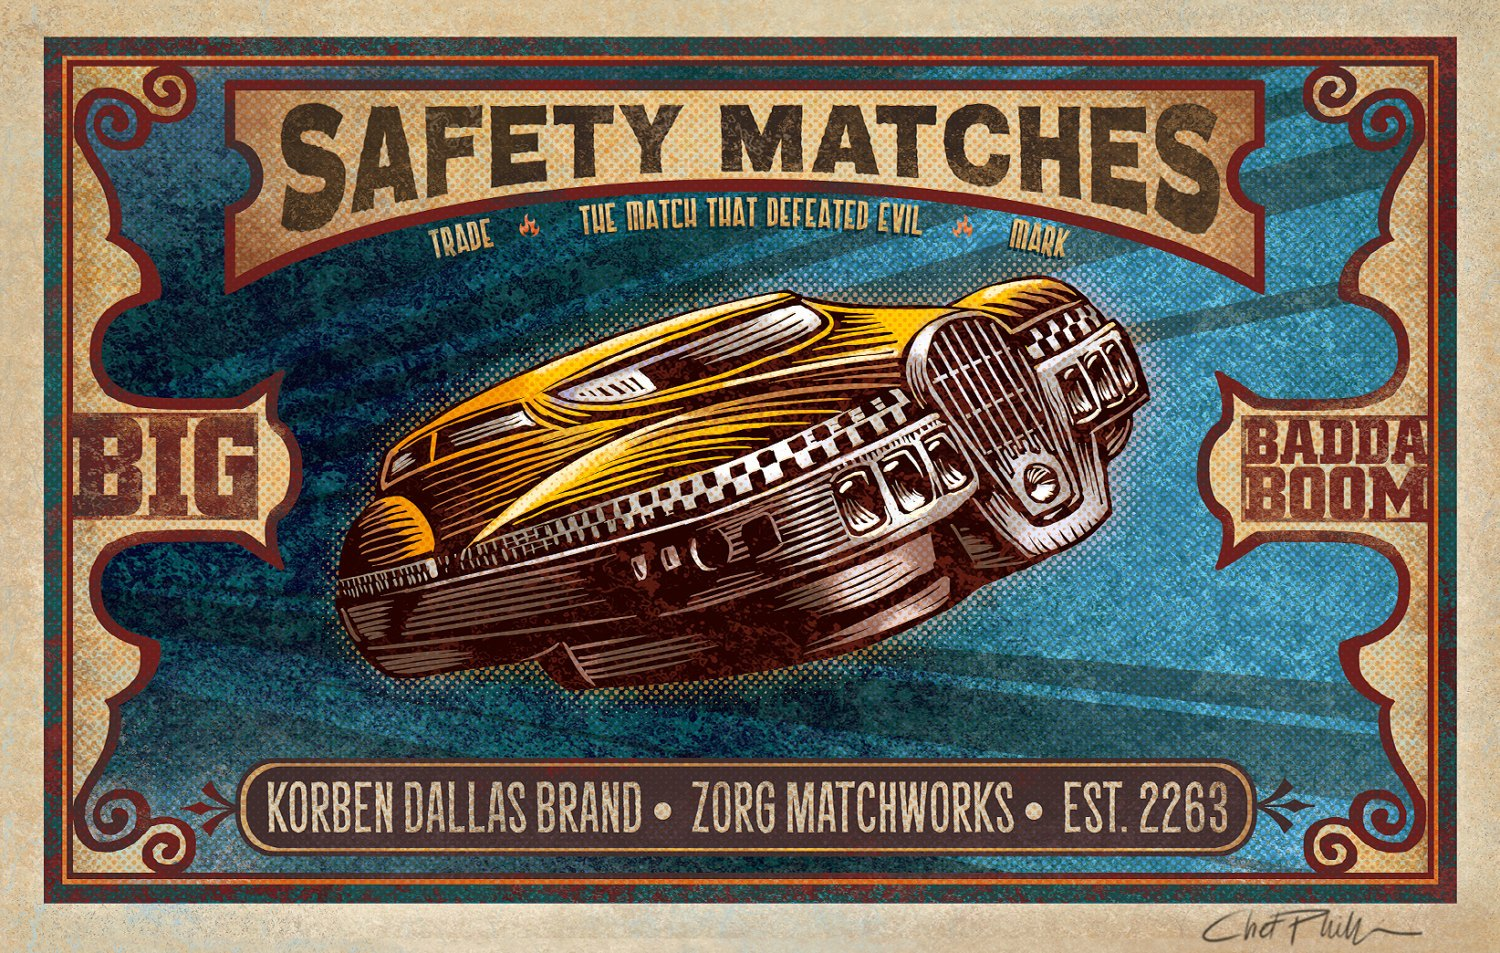 New Pop Matchbox Art by Chet Phillips